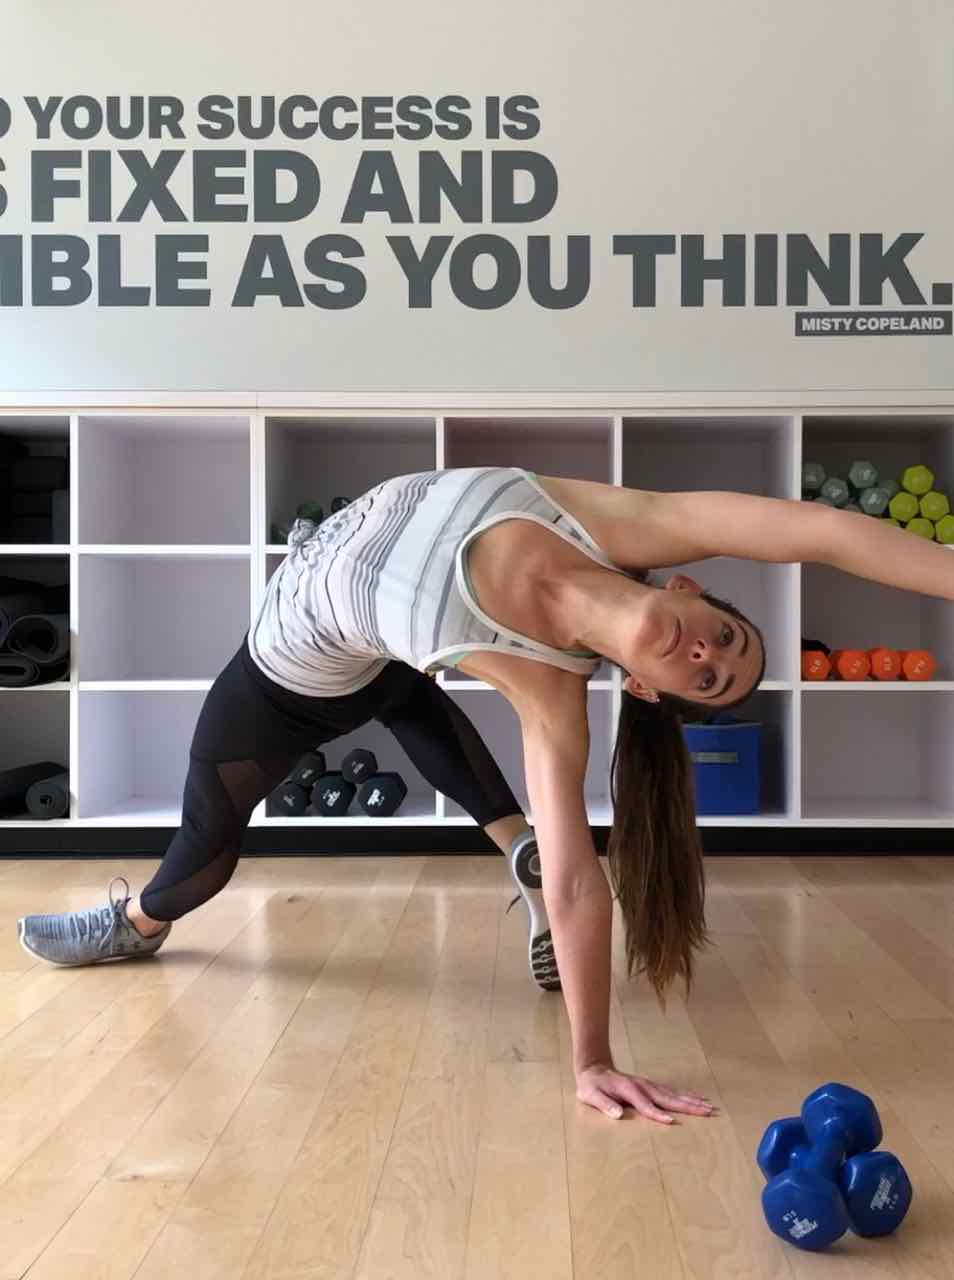 Good deals on fitness are possible - you just have to be flexible.